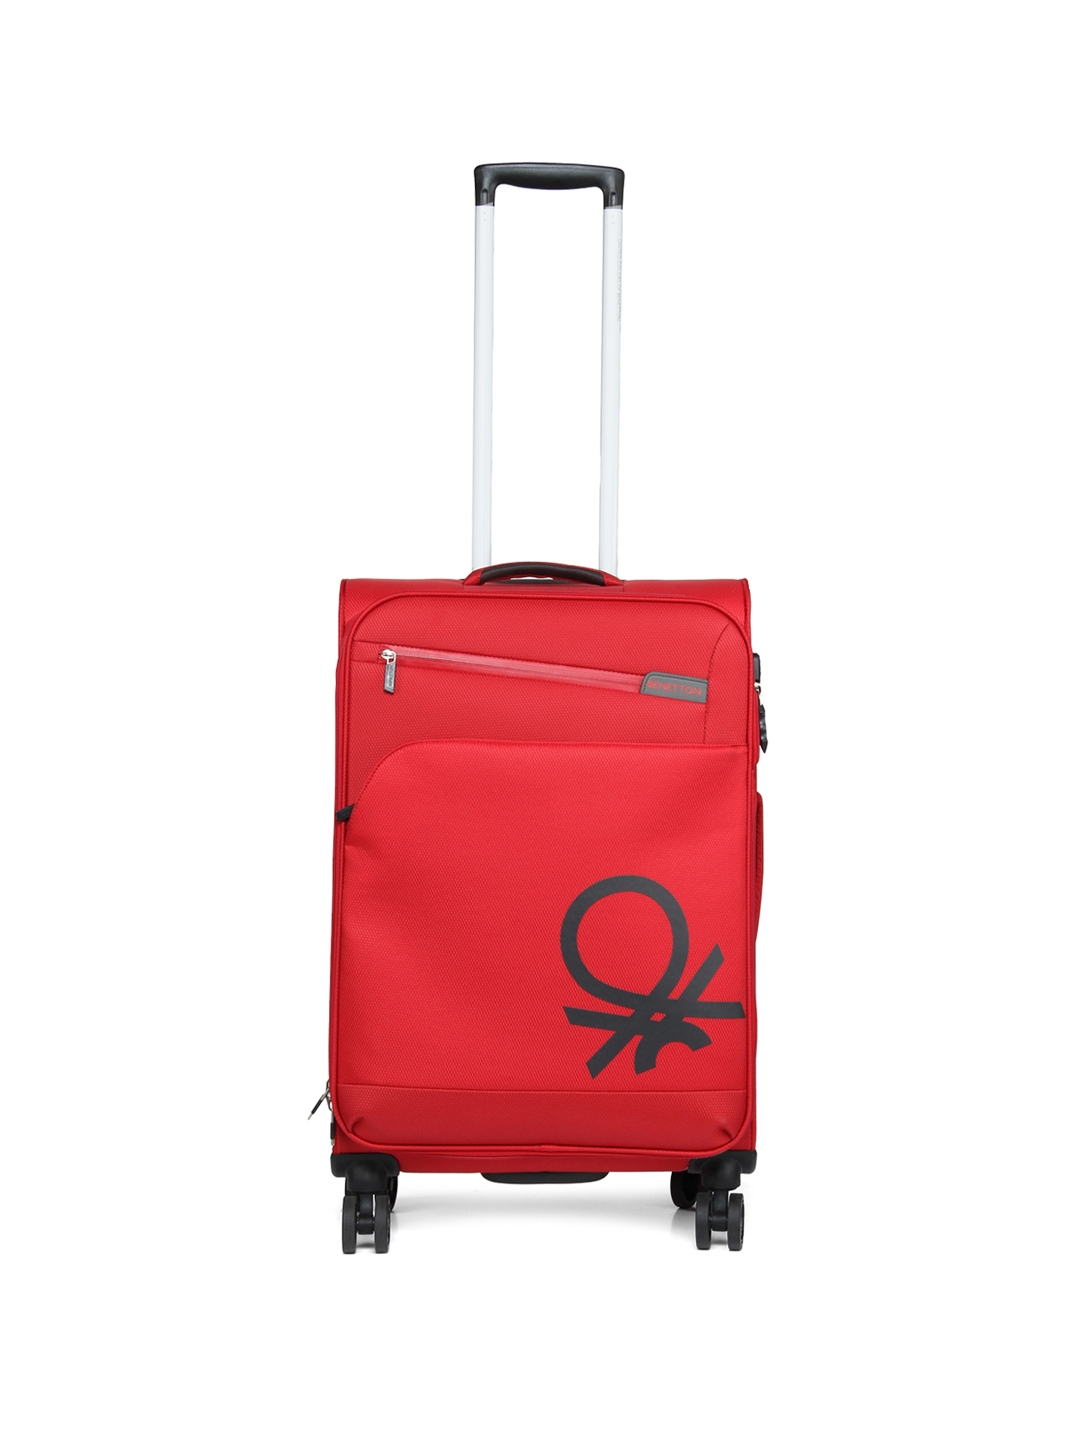 187a479d4 Buy United Colors Of Benetton Unisex Red Medium Trolley Suitcase ...